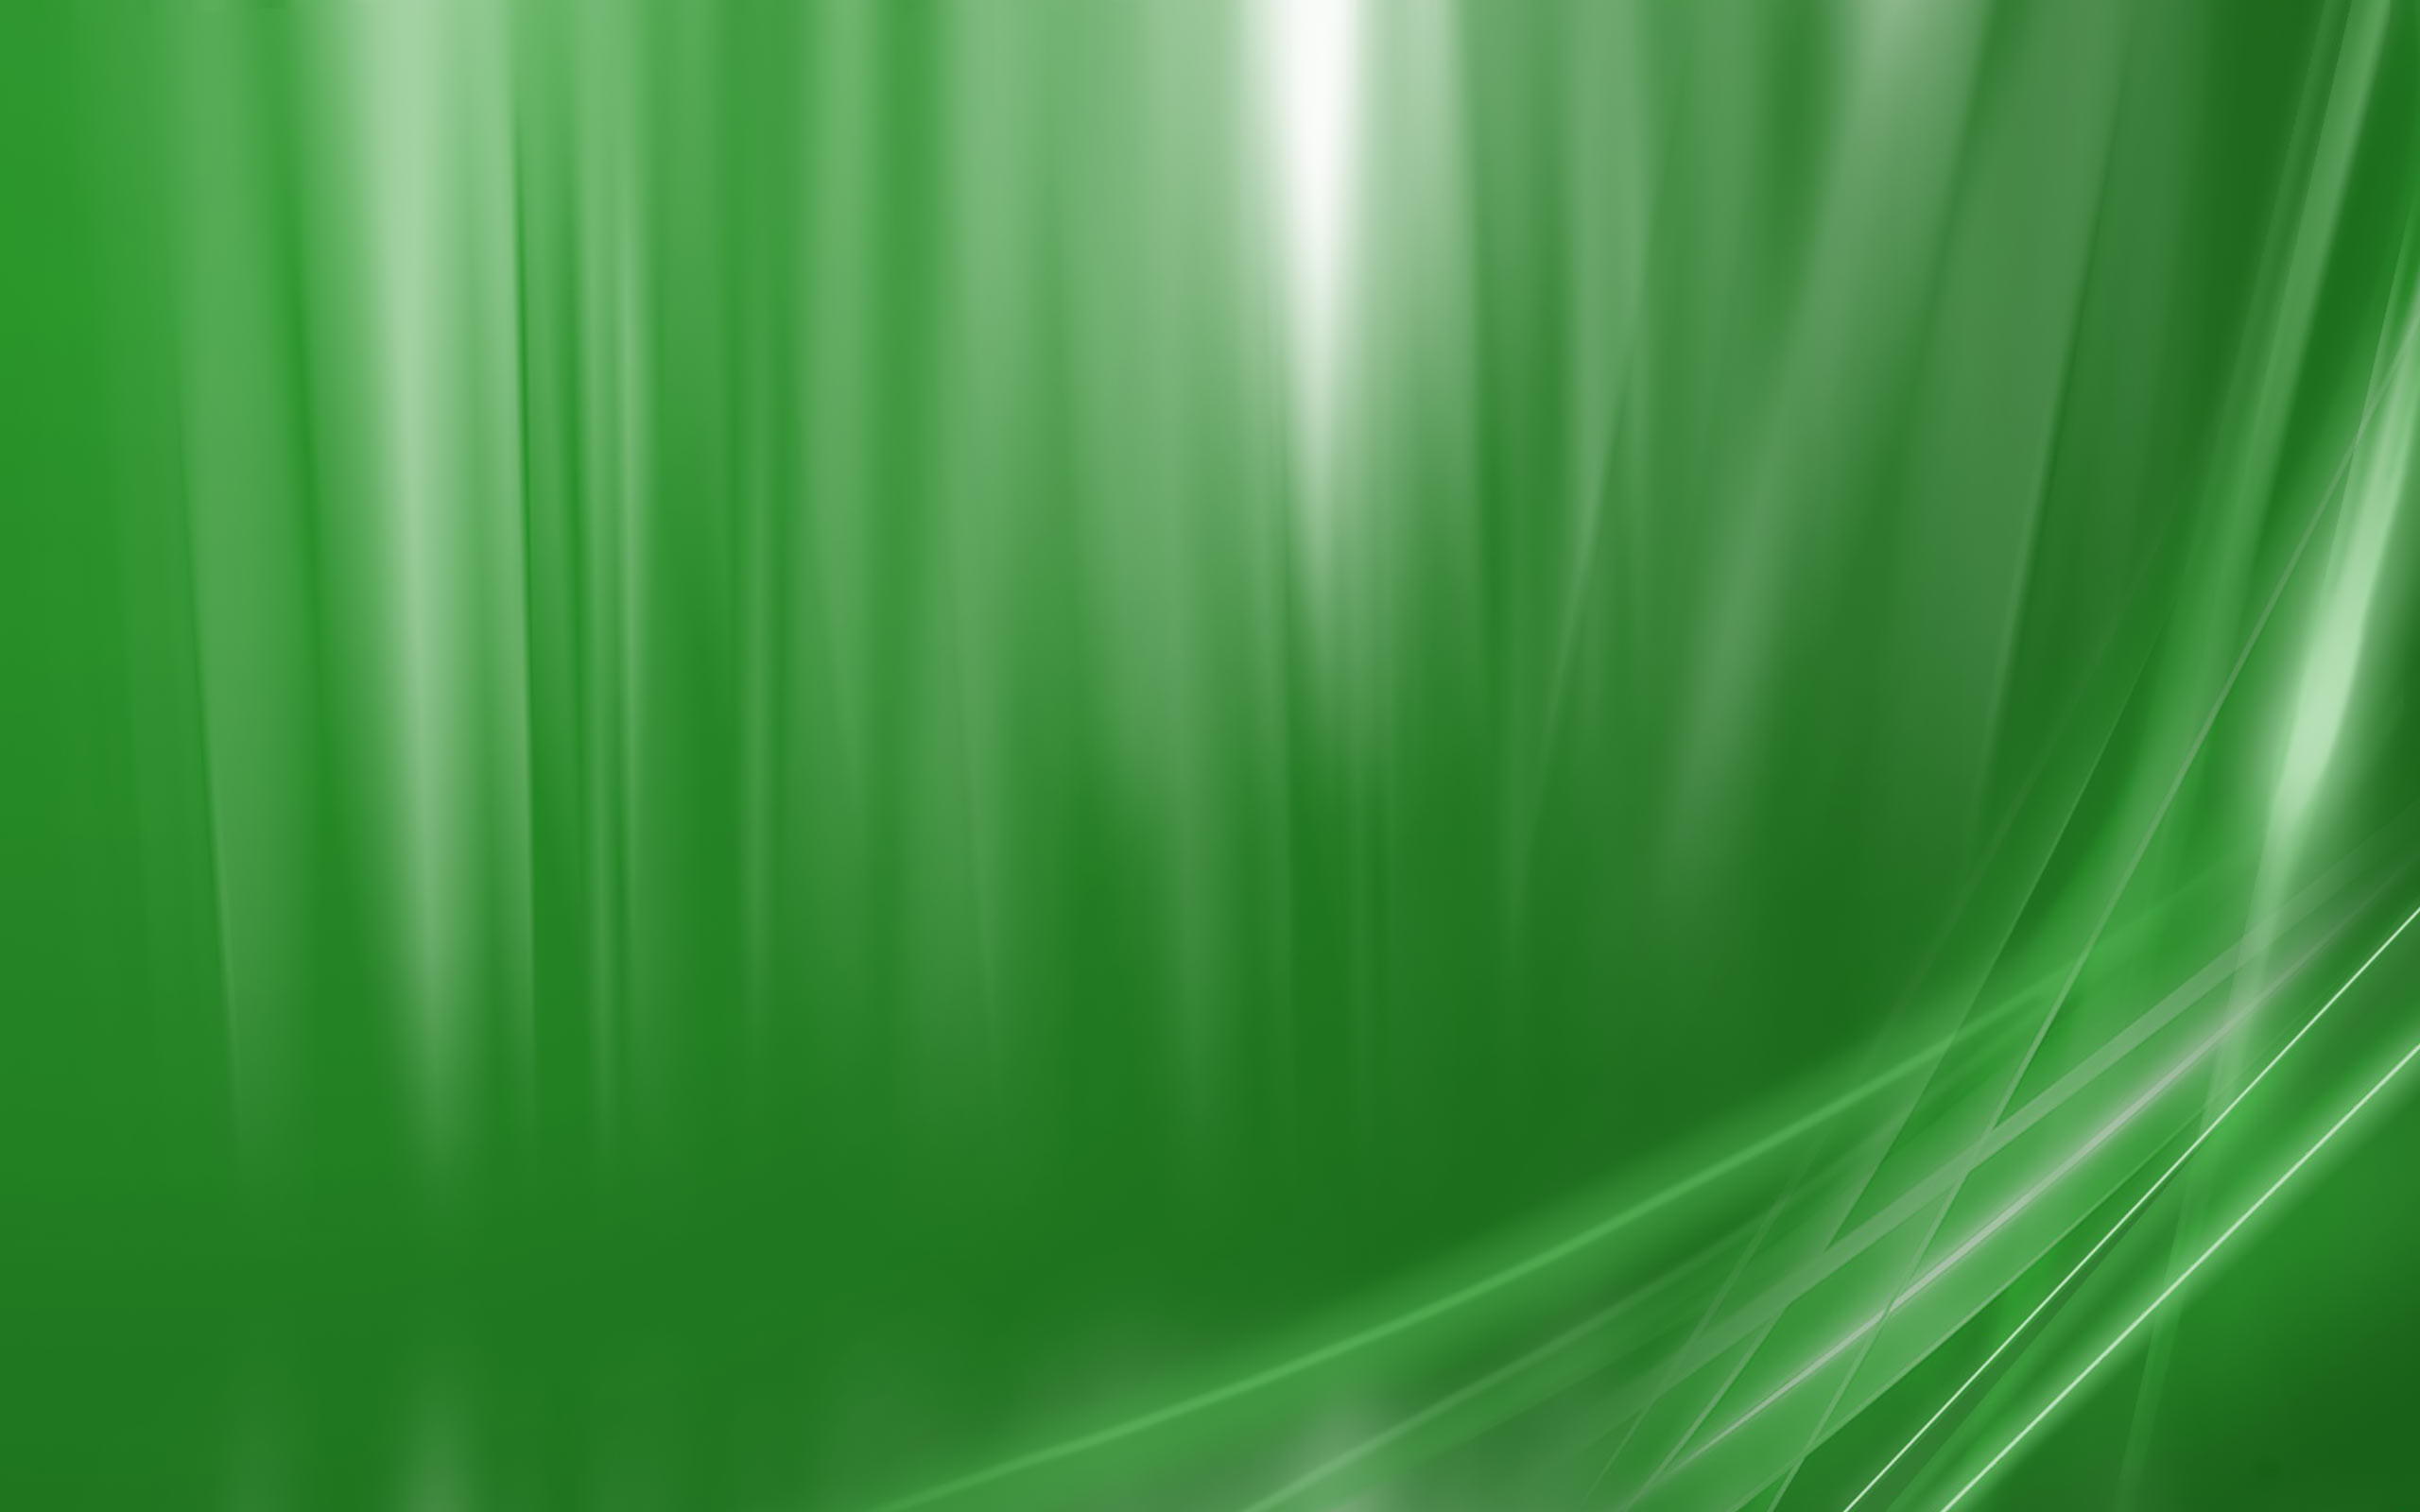 2560x1600 Green Background wallpaper